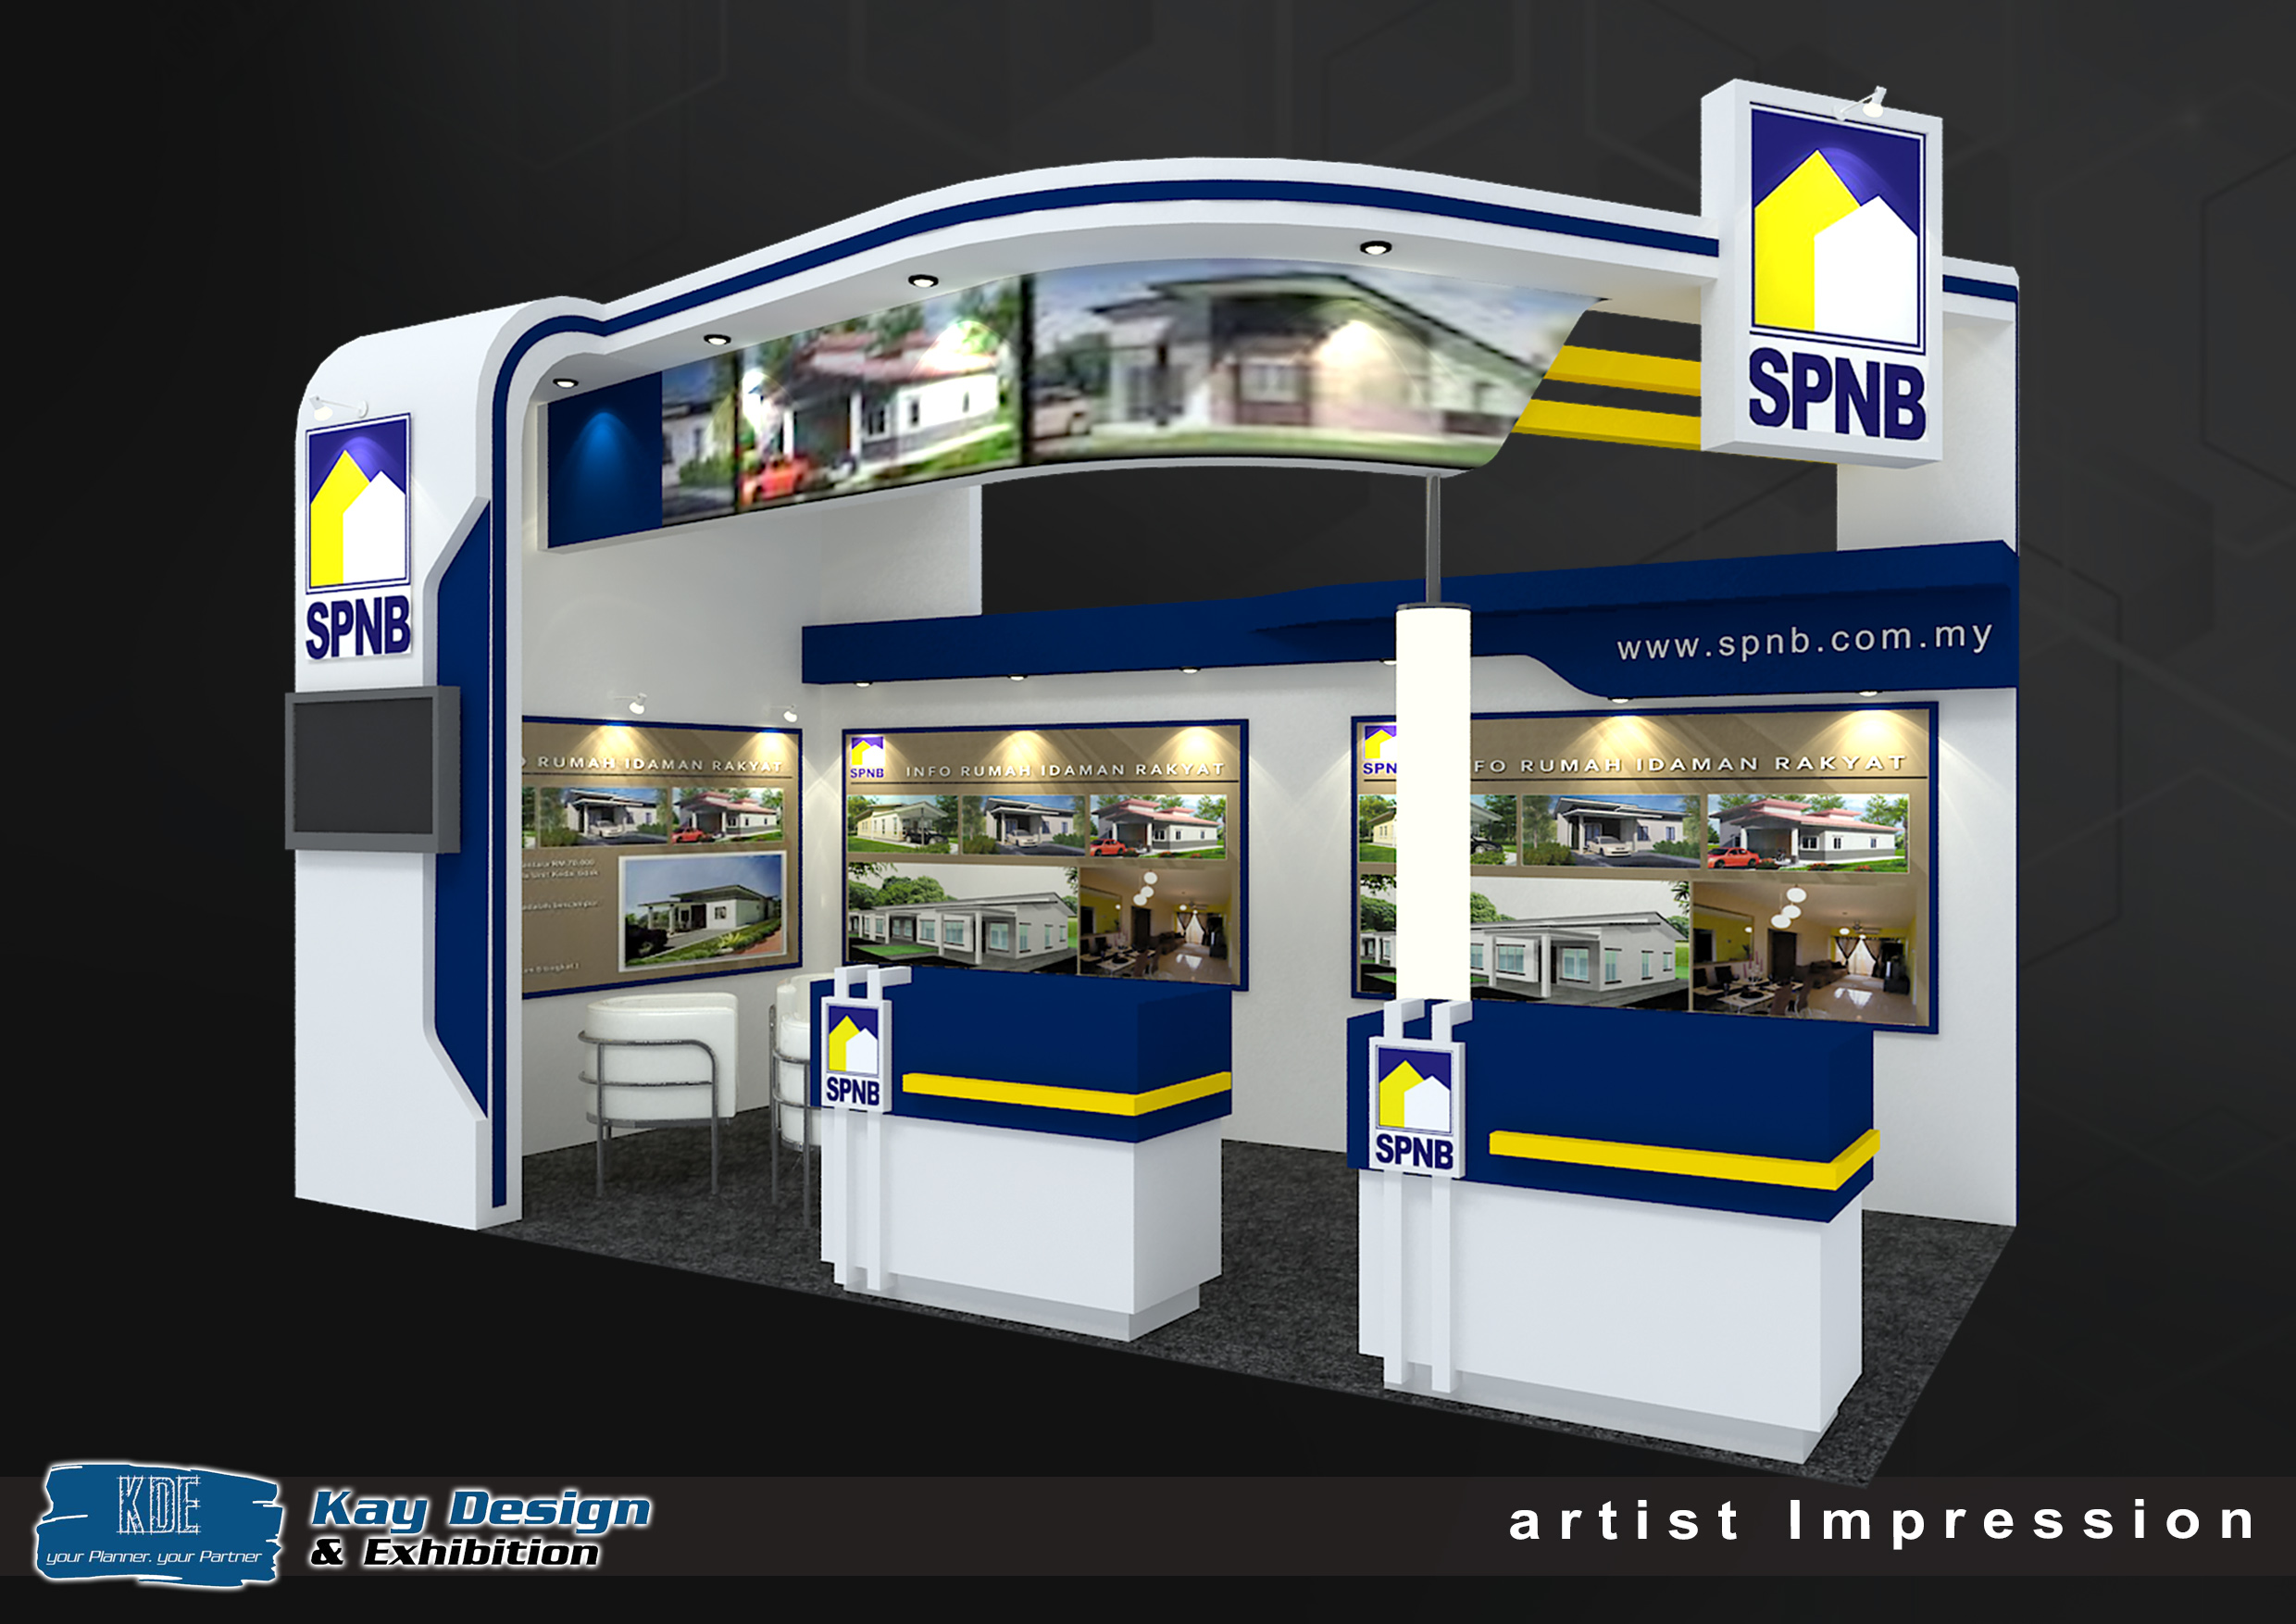 Exhibition Booth Requirements : Spnb property booth design exhibition designer